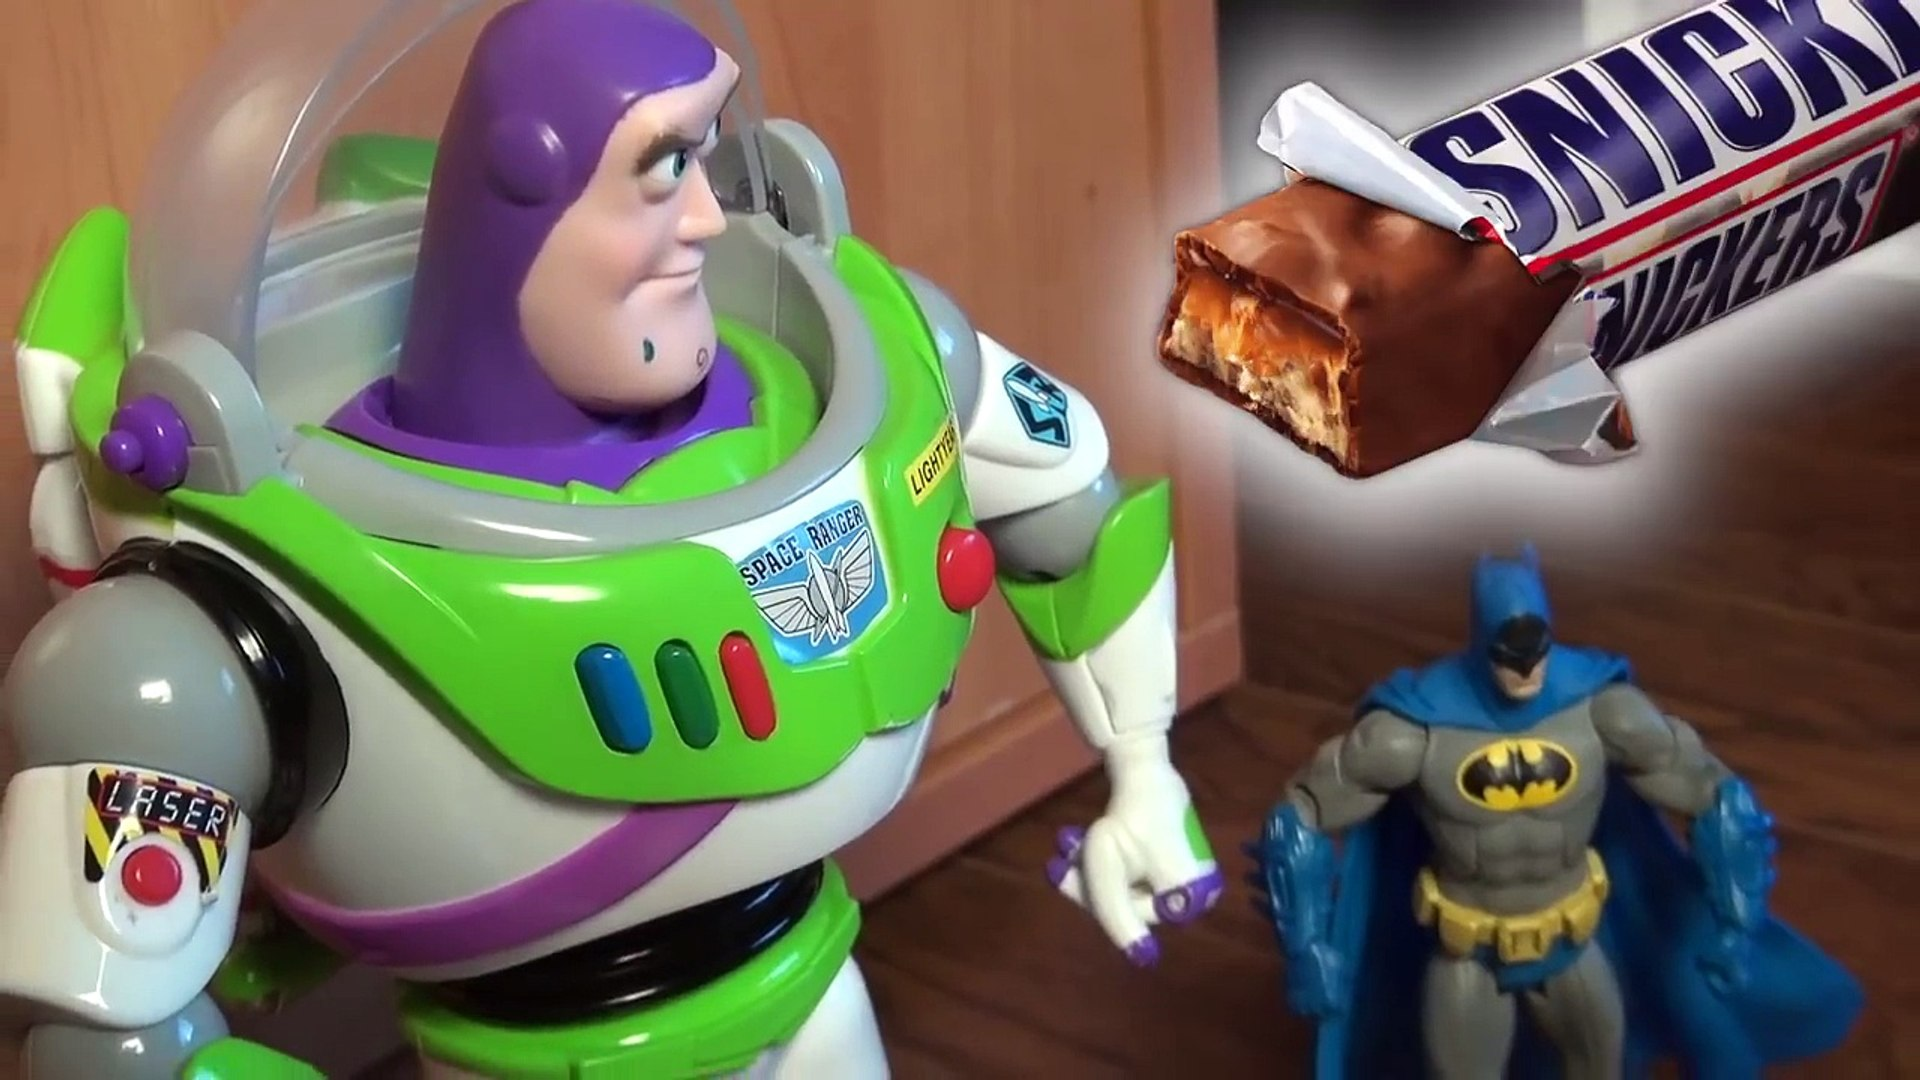 SNICKERS Toy Story  2018 Super Bowl 2018 Commercial Ad _ TOY STORY 4 NFL Parody